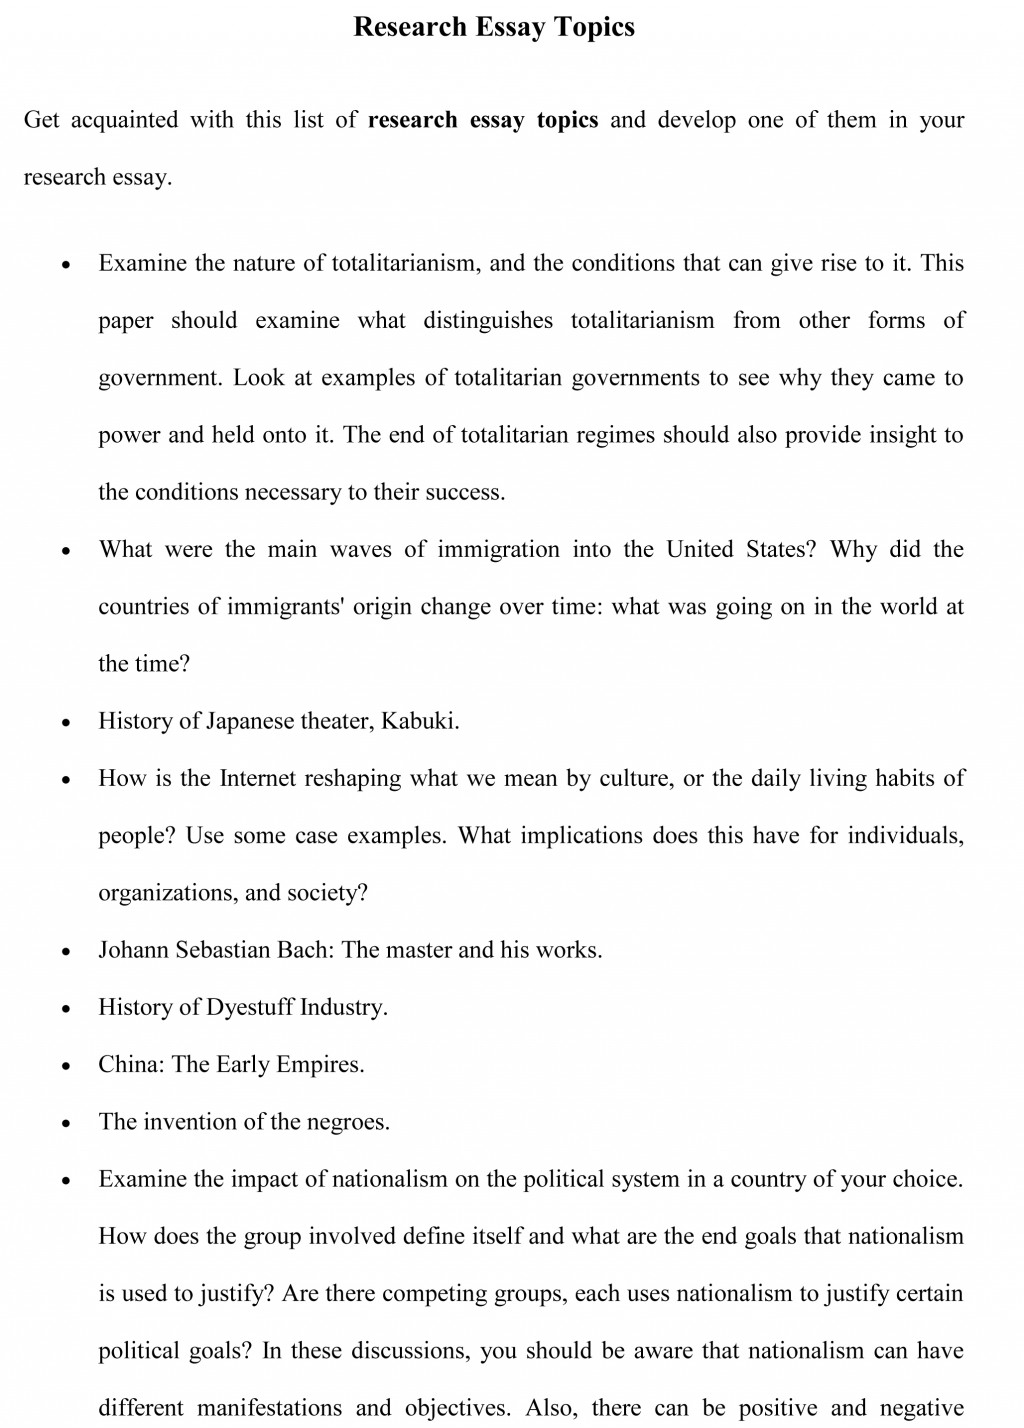 005 Research Paper Possible Topics For Business Essay Striking A Globalization International Large